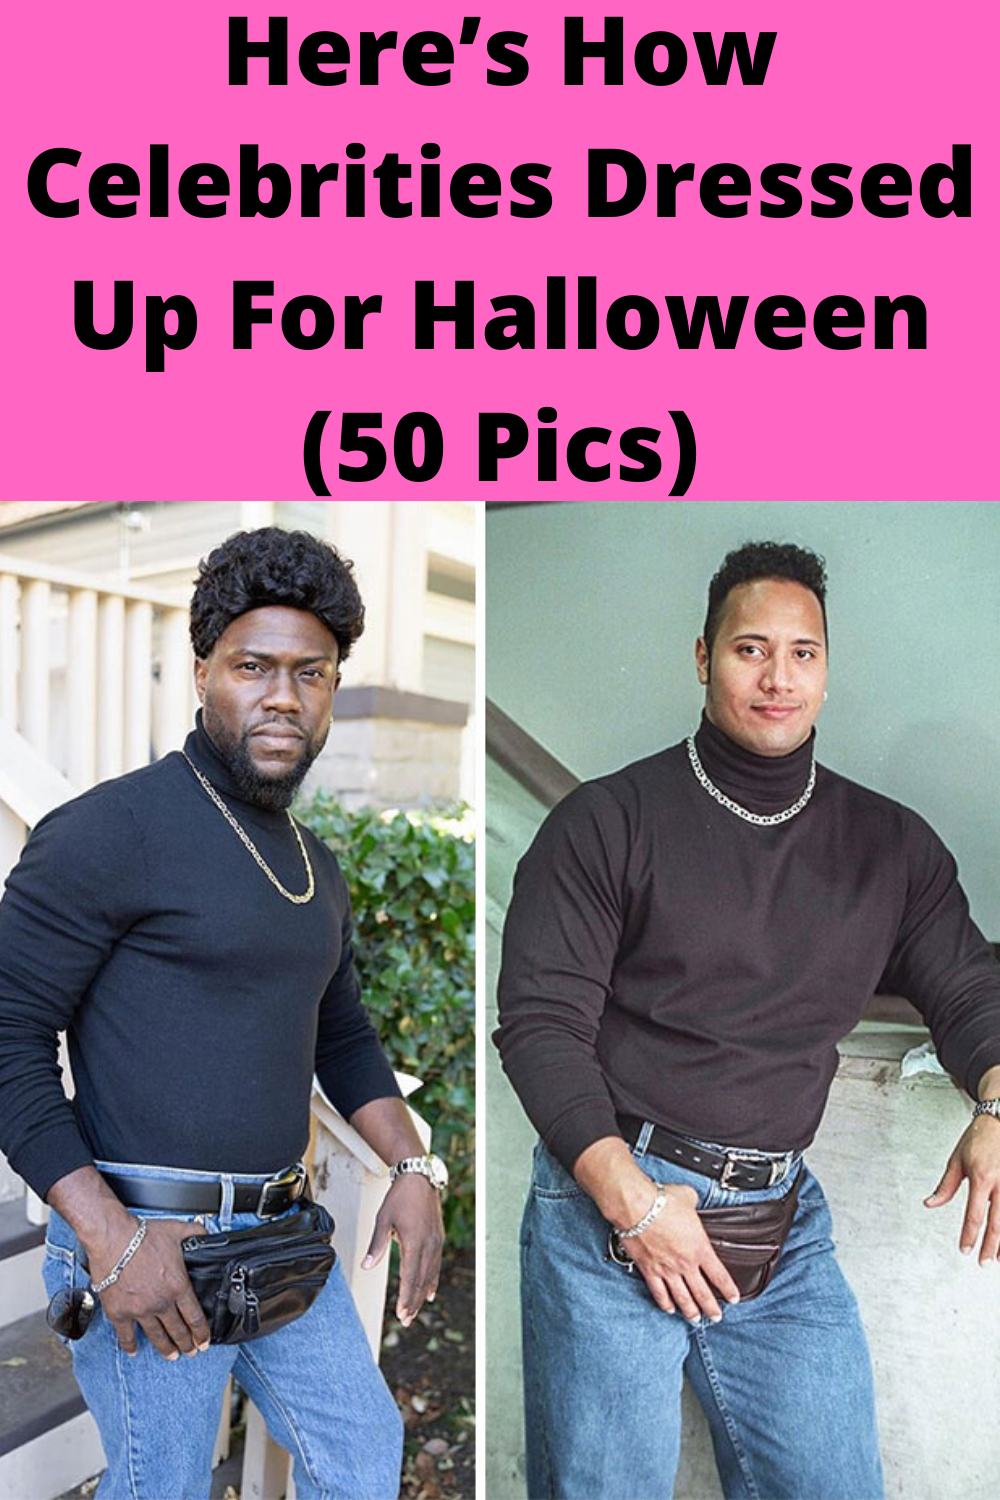 How Did Celebrities Dresses Up For 2020 Halloween Here's How Celebrities Dressed Up For Halloween (50 Pics) in 2020